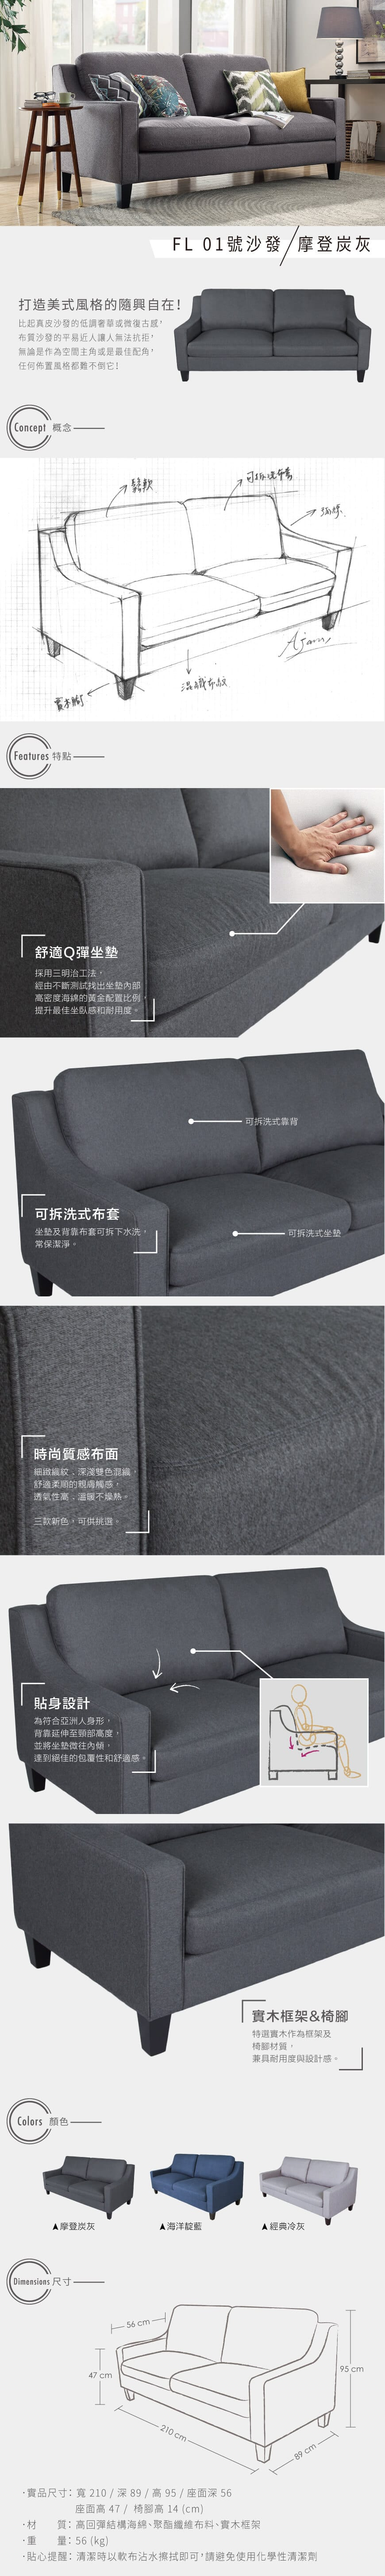 20160316 fl01 sofa dark gray